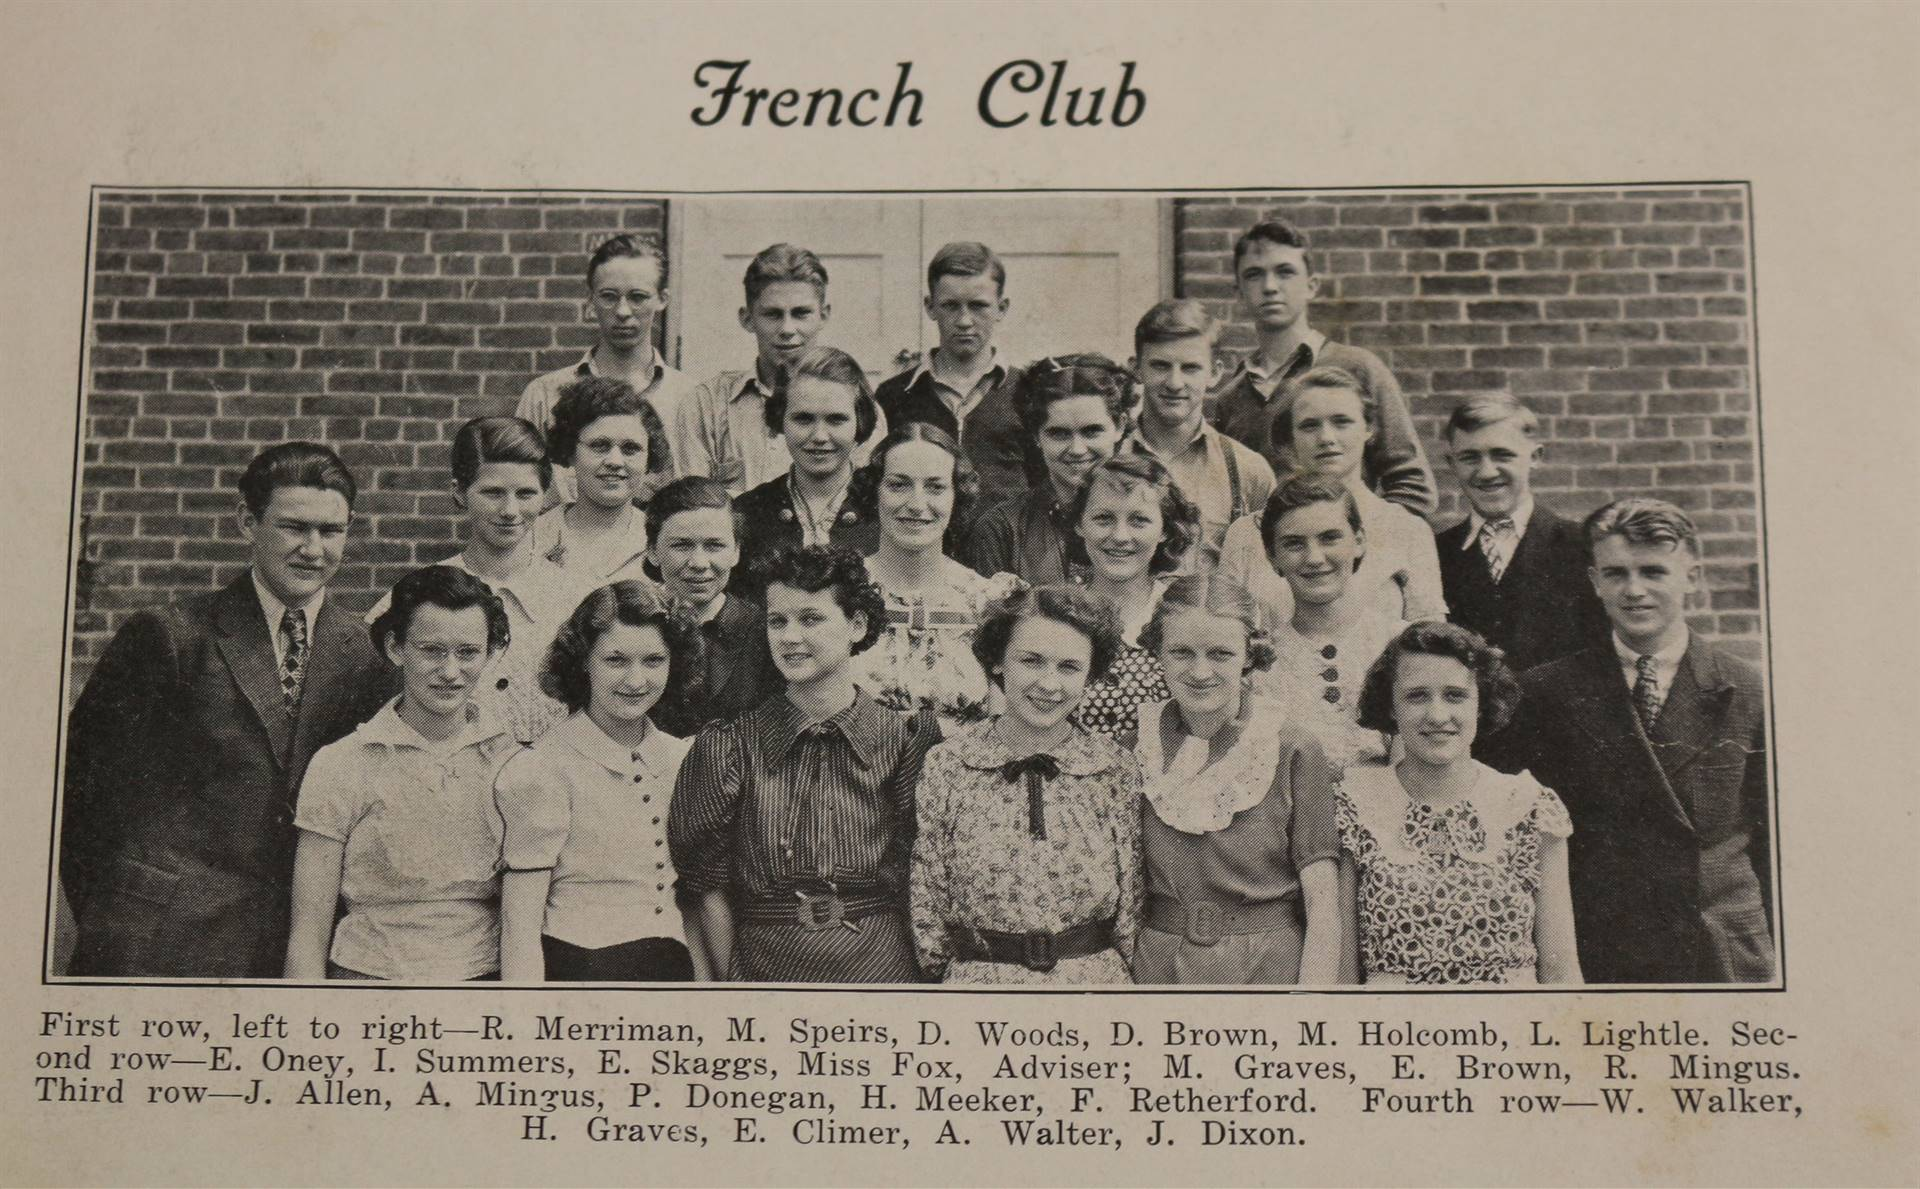 1937 French Club